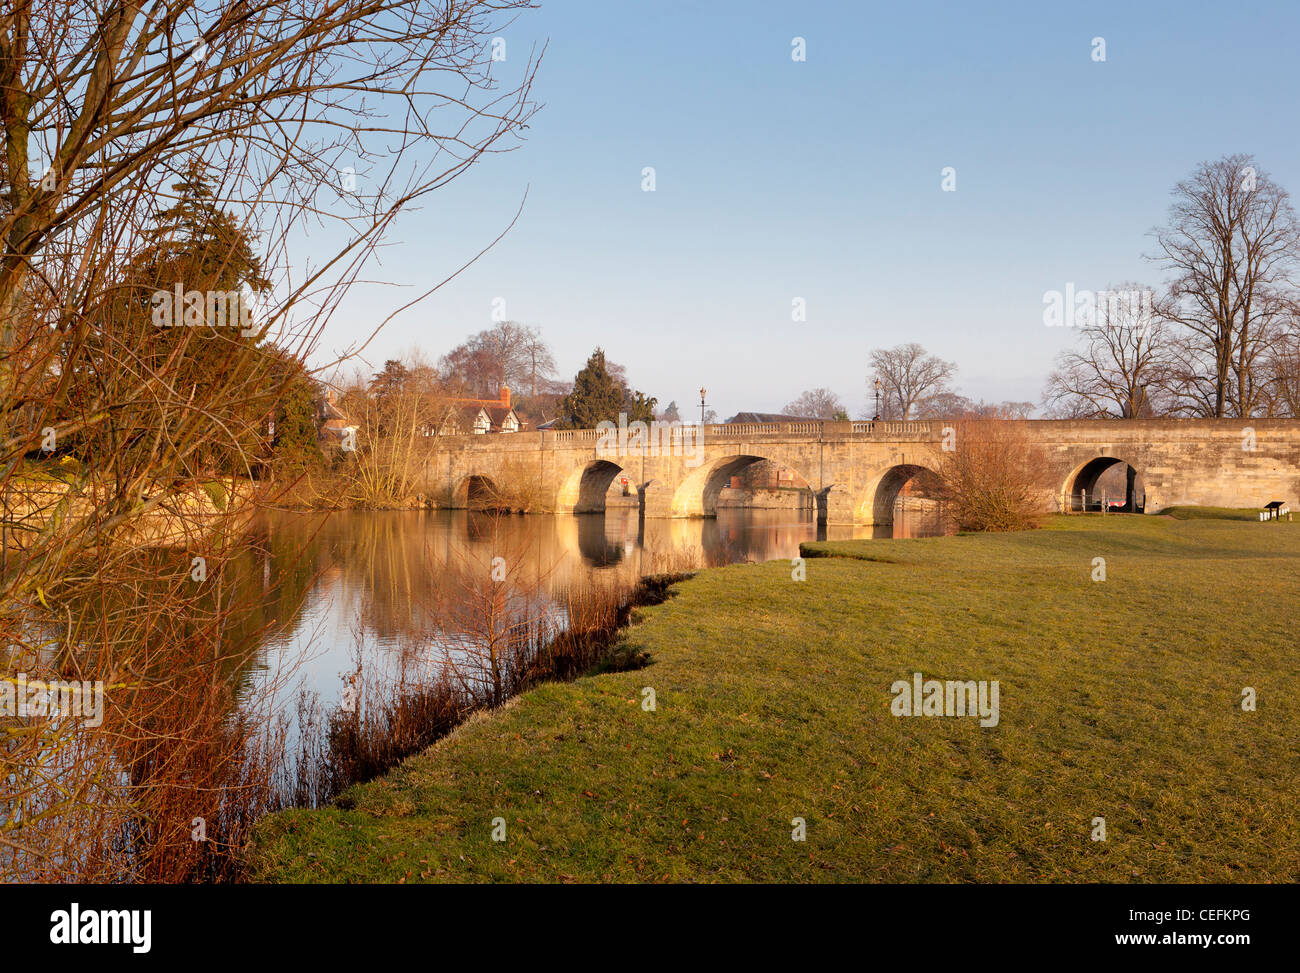 Wallingford Bridge, River Thames. Oxfordshire, England, UK - Stock Image